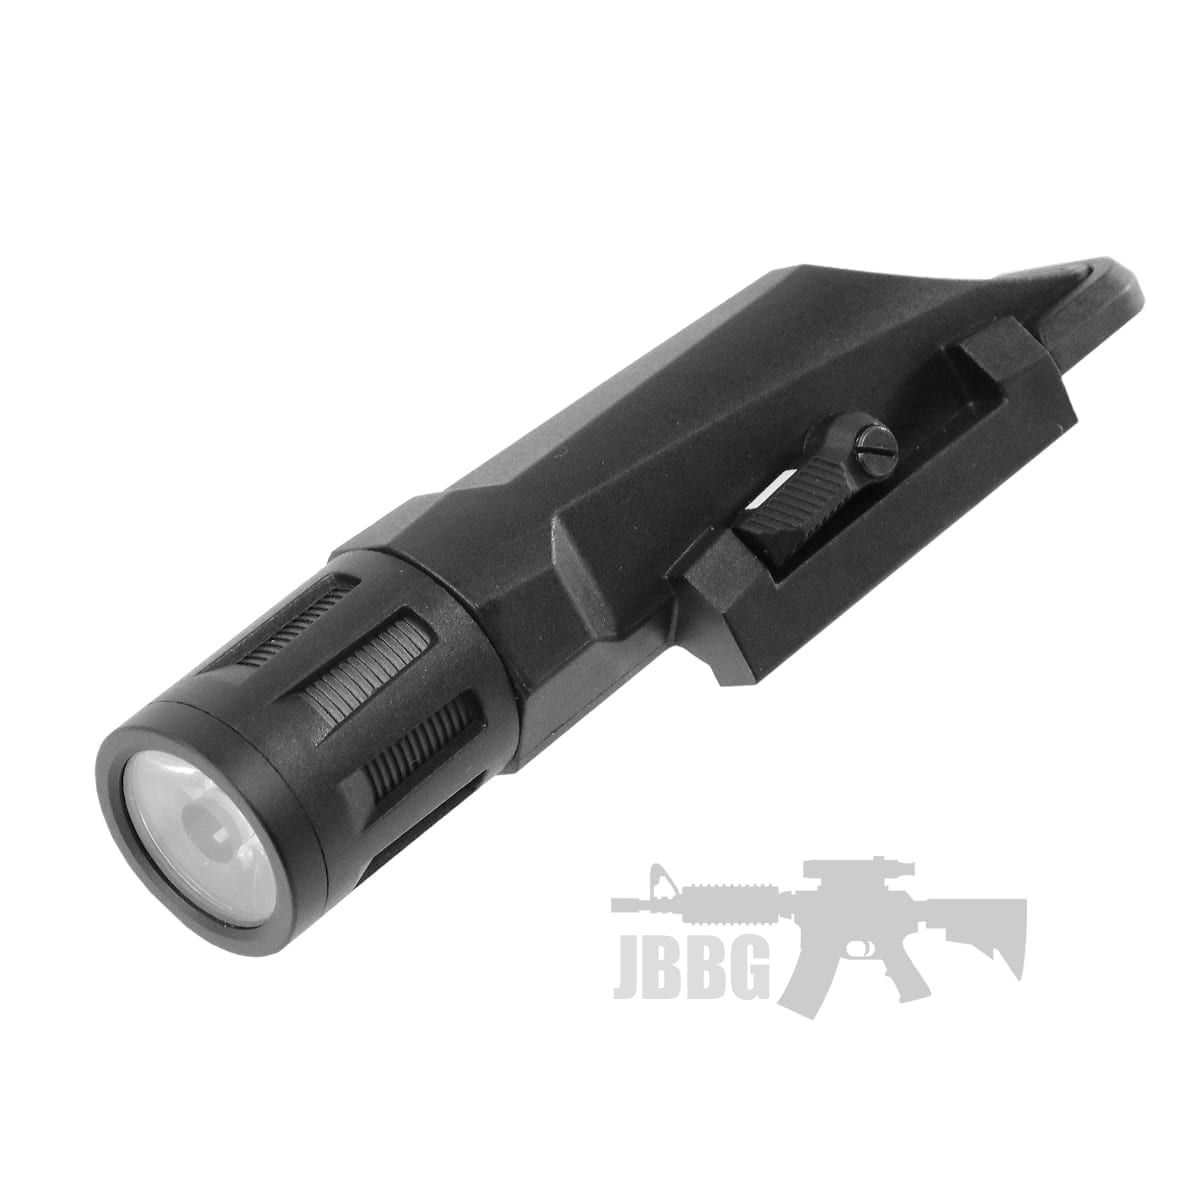 WMLX White Gen2 Weapons Flashlight